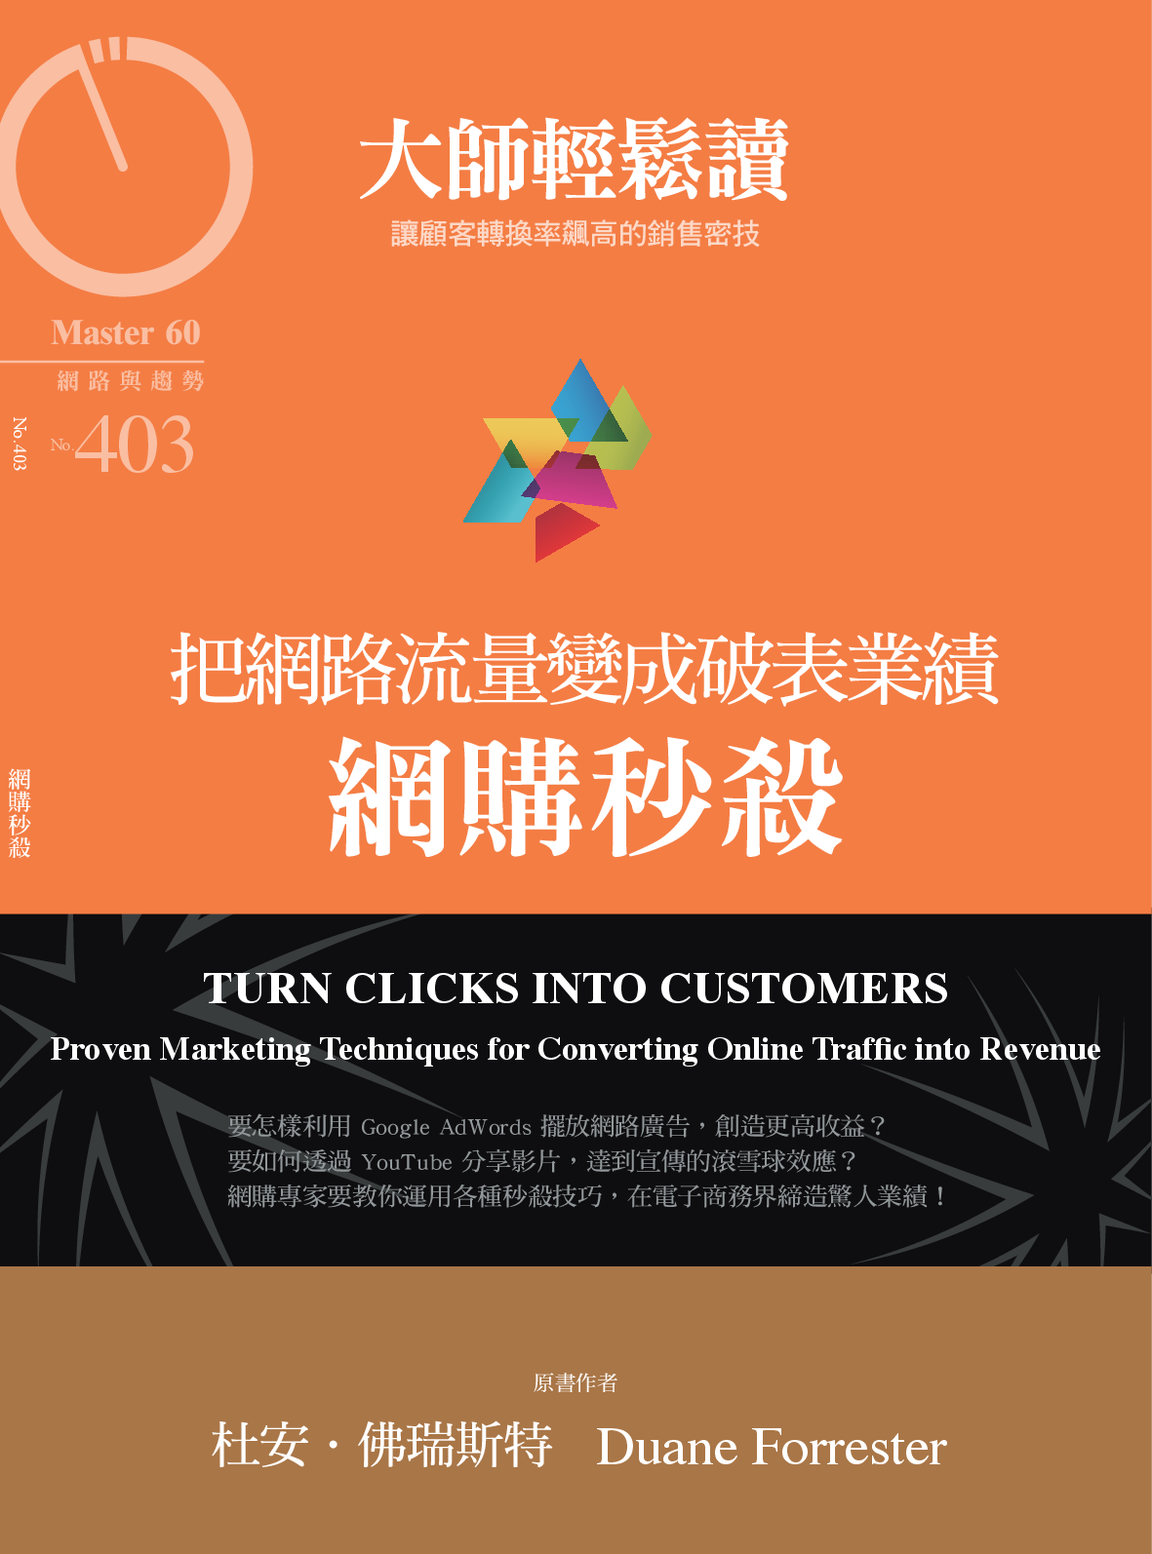 NO.403 - 網購秒殺- 把網路流量變成破表業績TURN CLICKS INTO CUSTOMERS - Proven Marketing  Techniques for Converting Online Traffic into Revenue